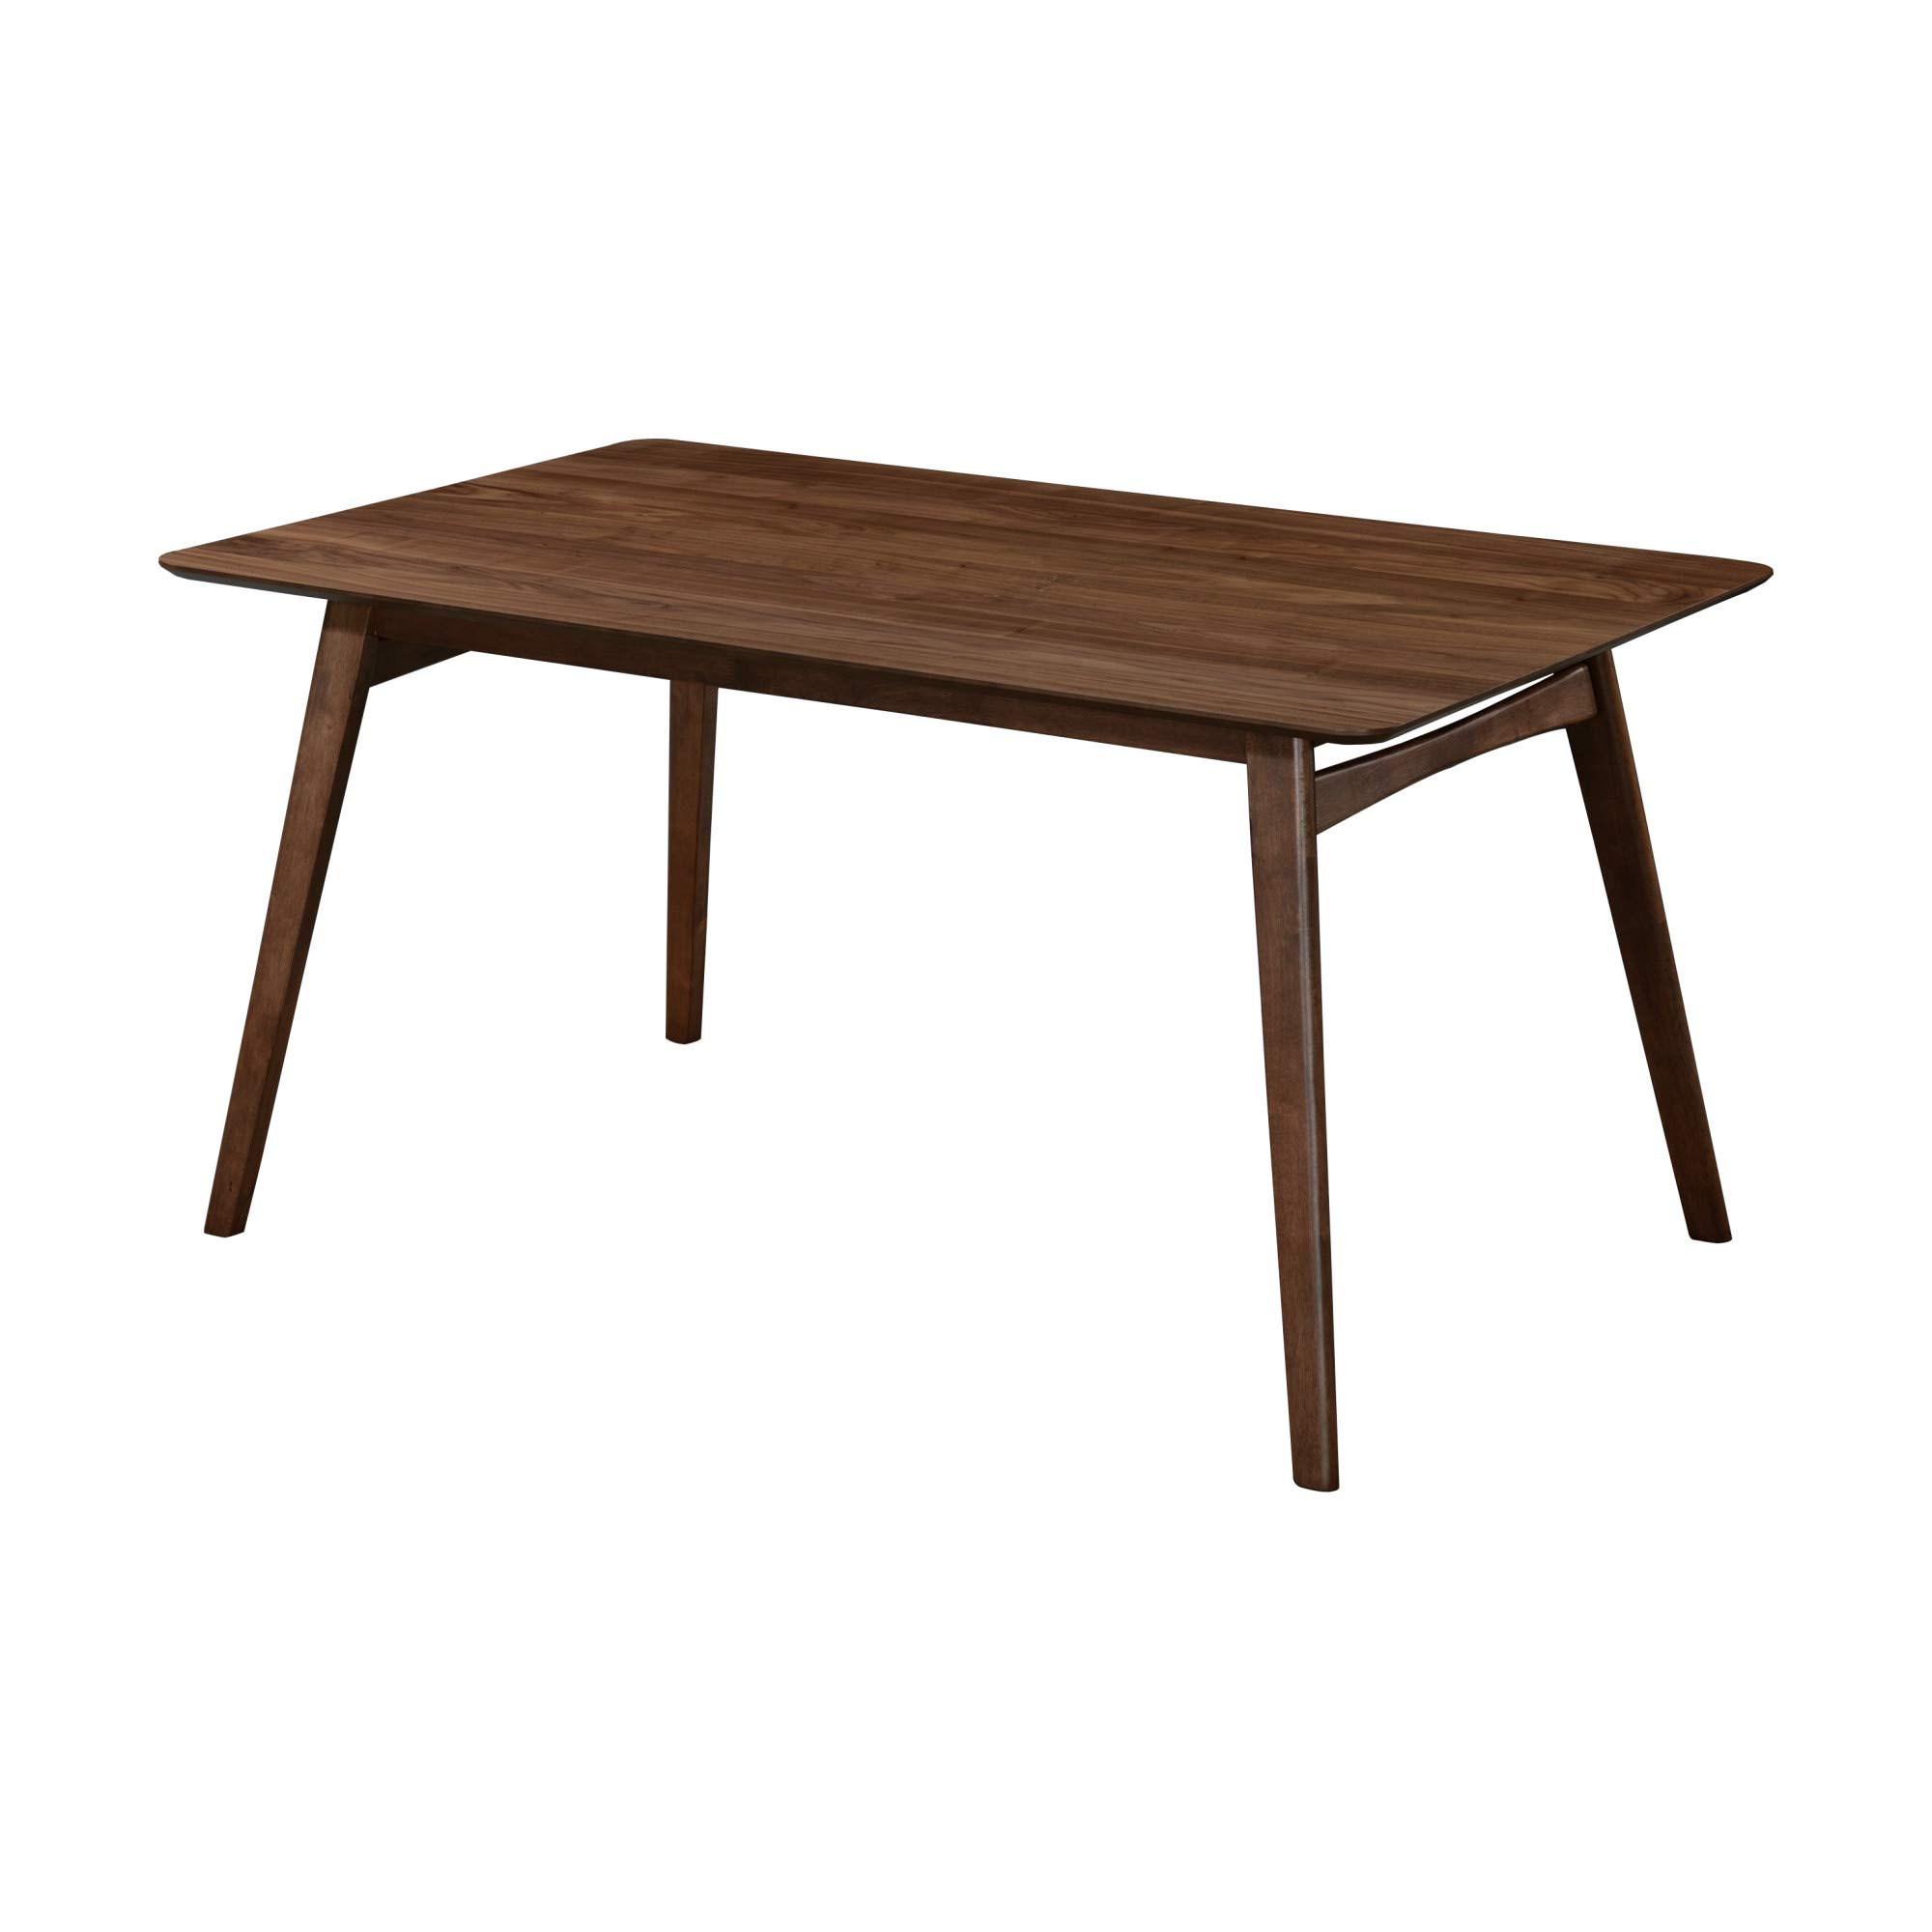 Artum Hill DI11-07 End Table with Plank-Style Top and Open Shelving, Brown